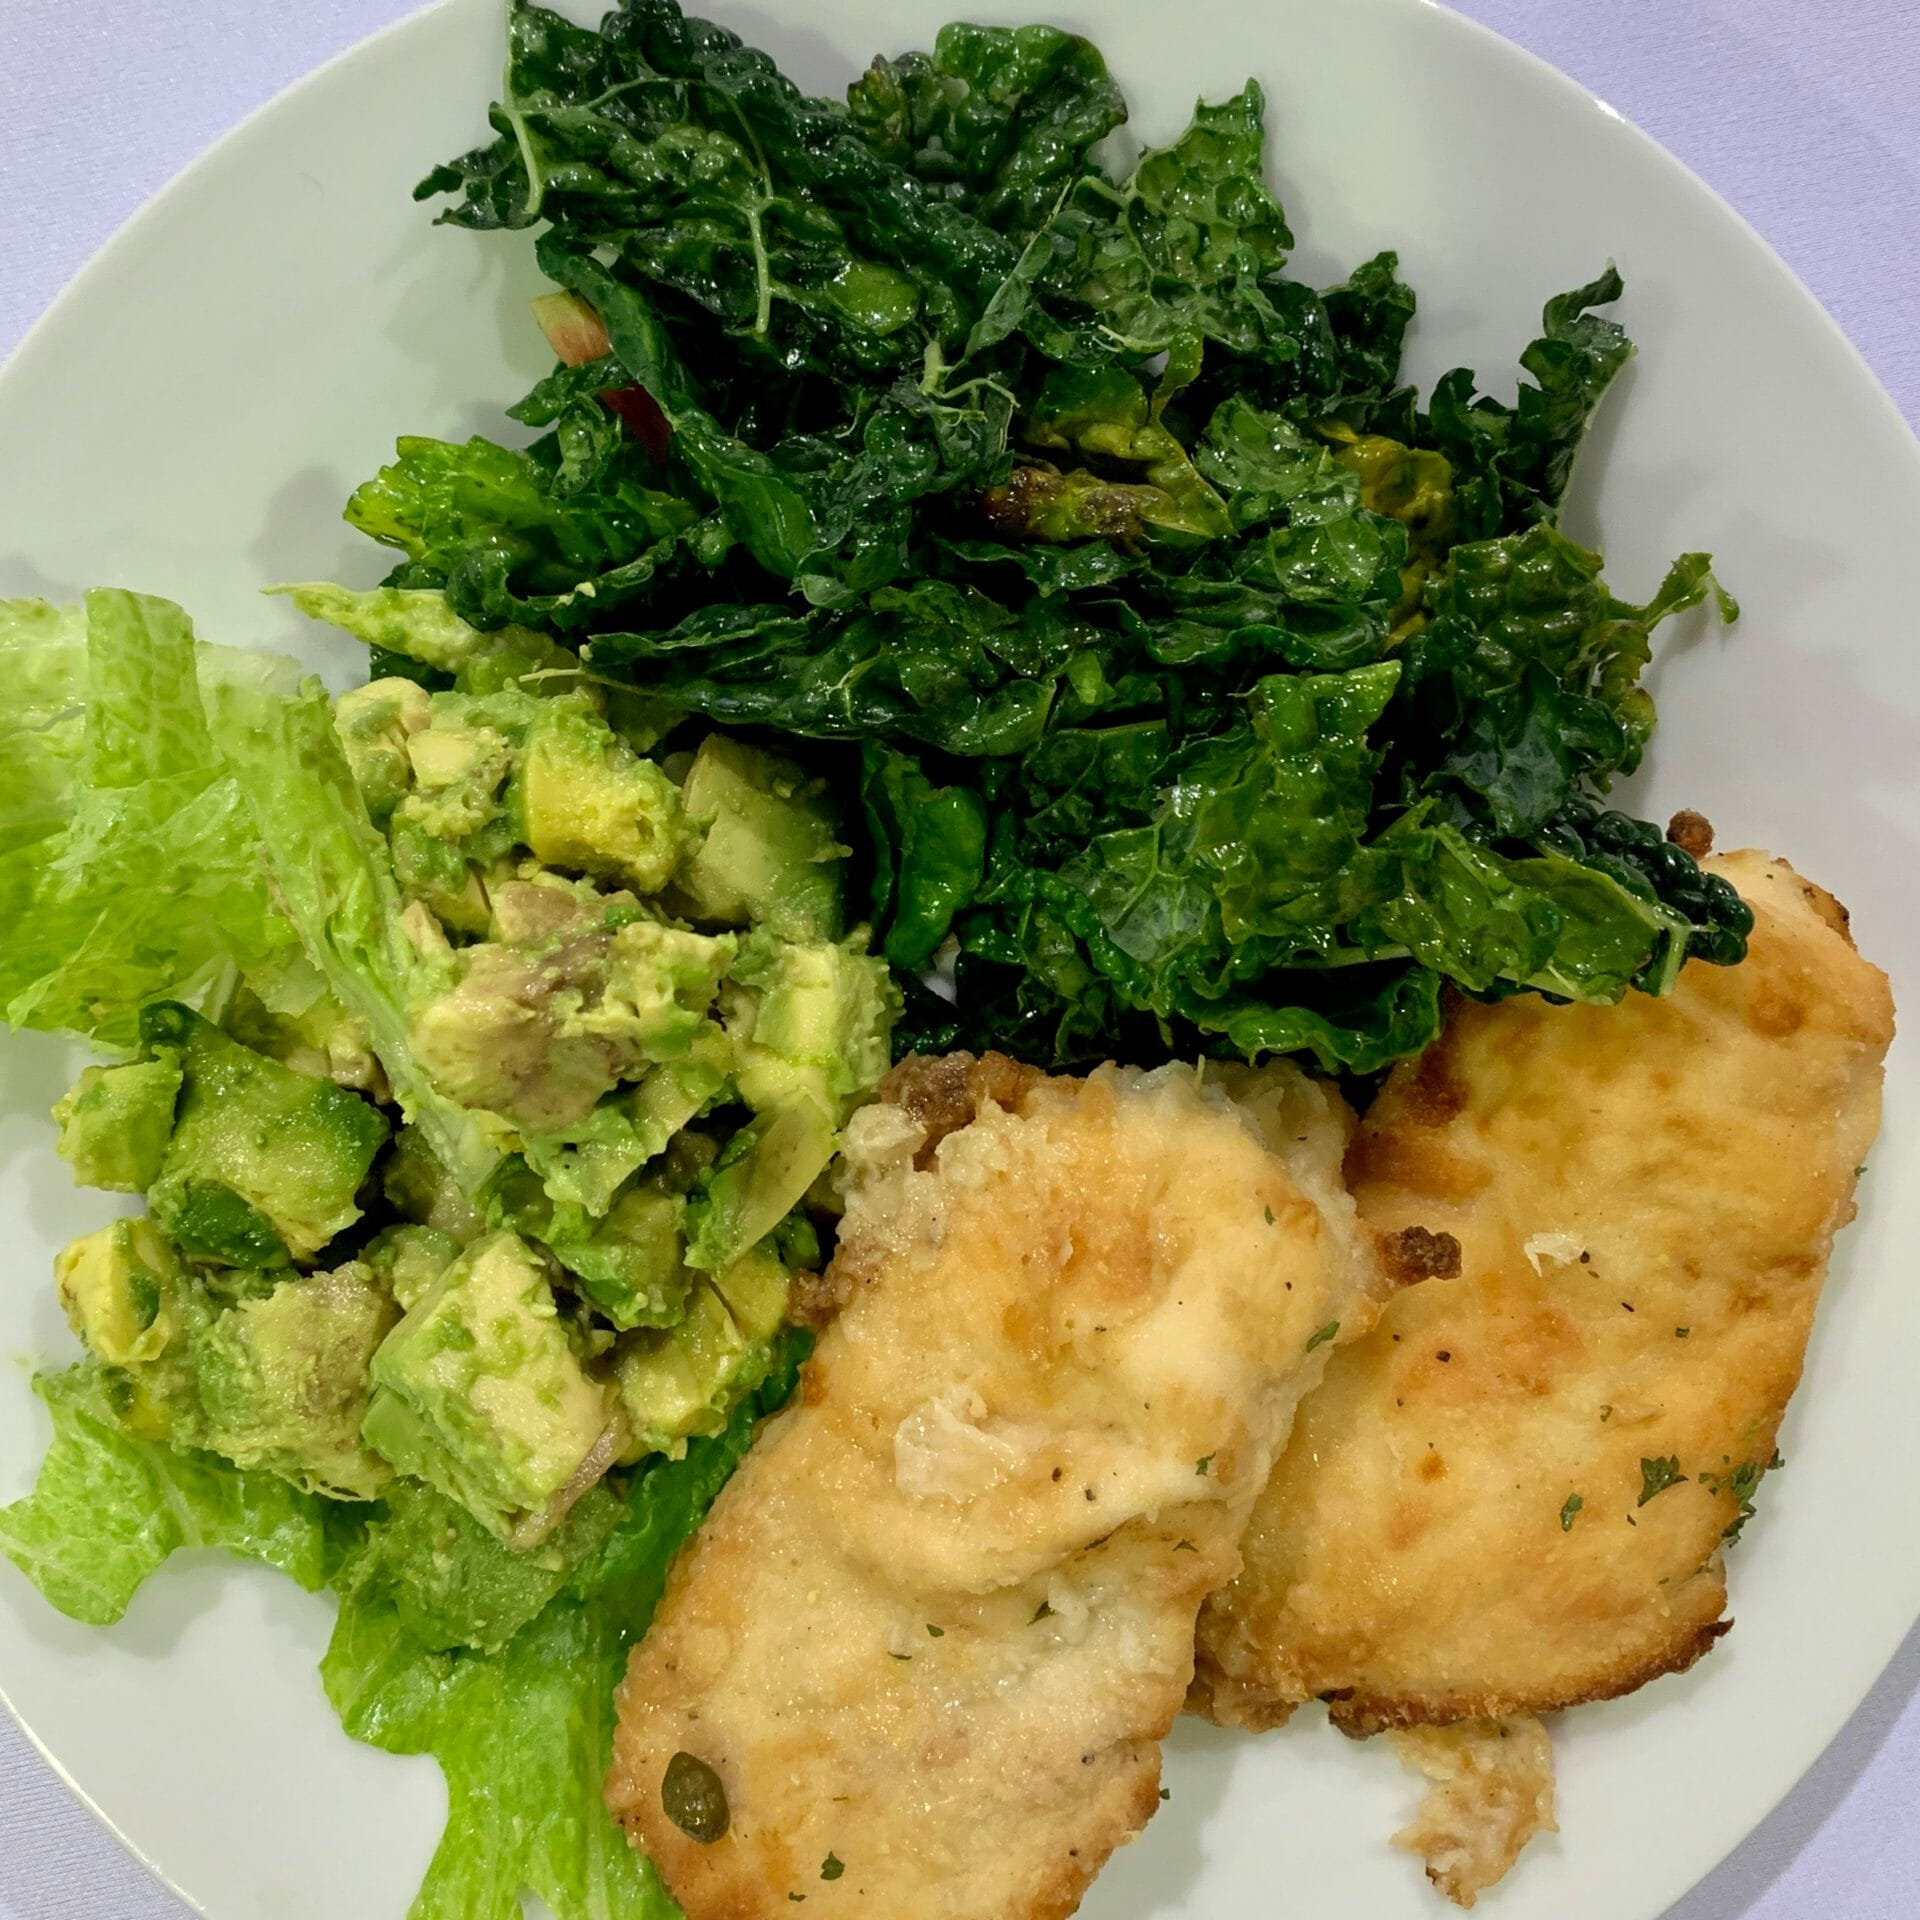 Fried fish with kale, lettuce and avocado